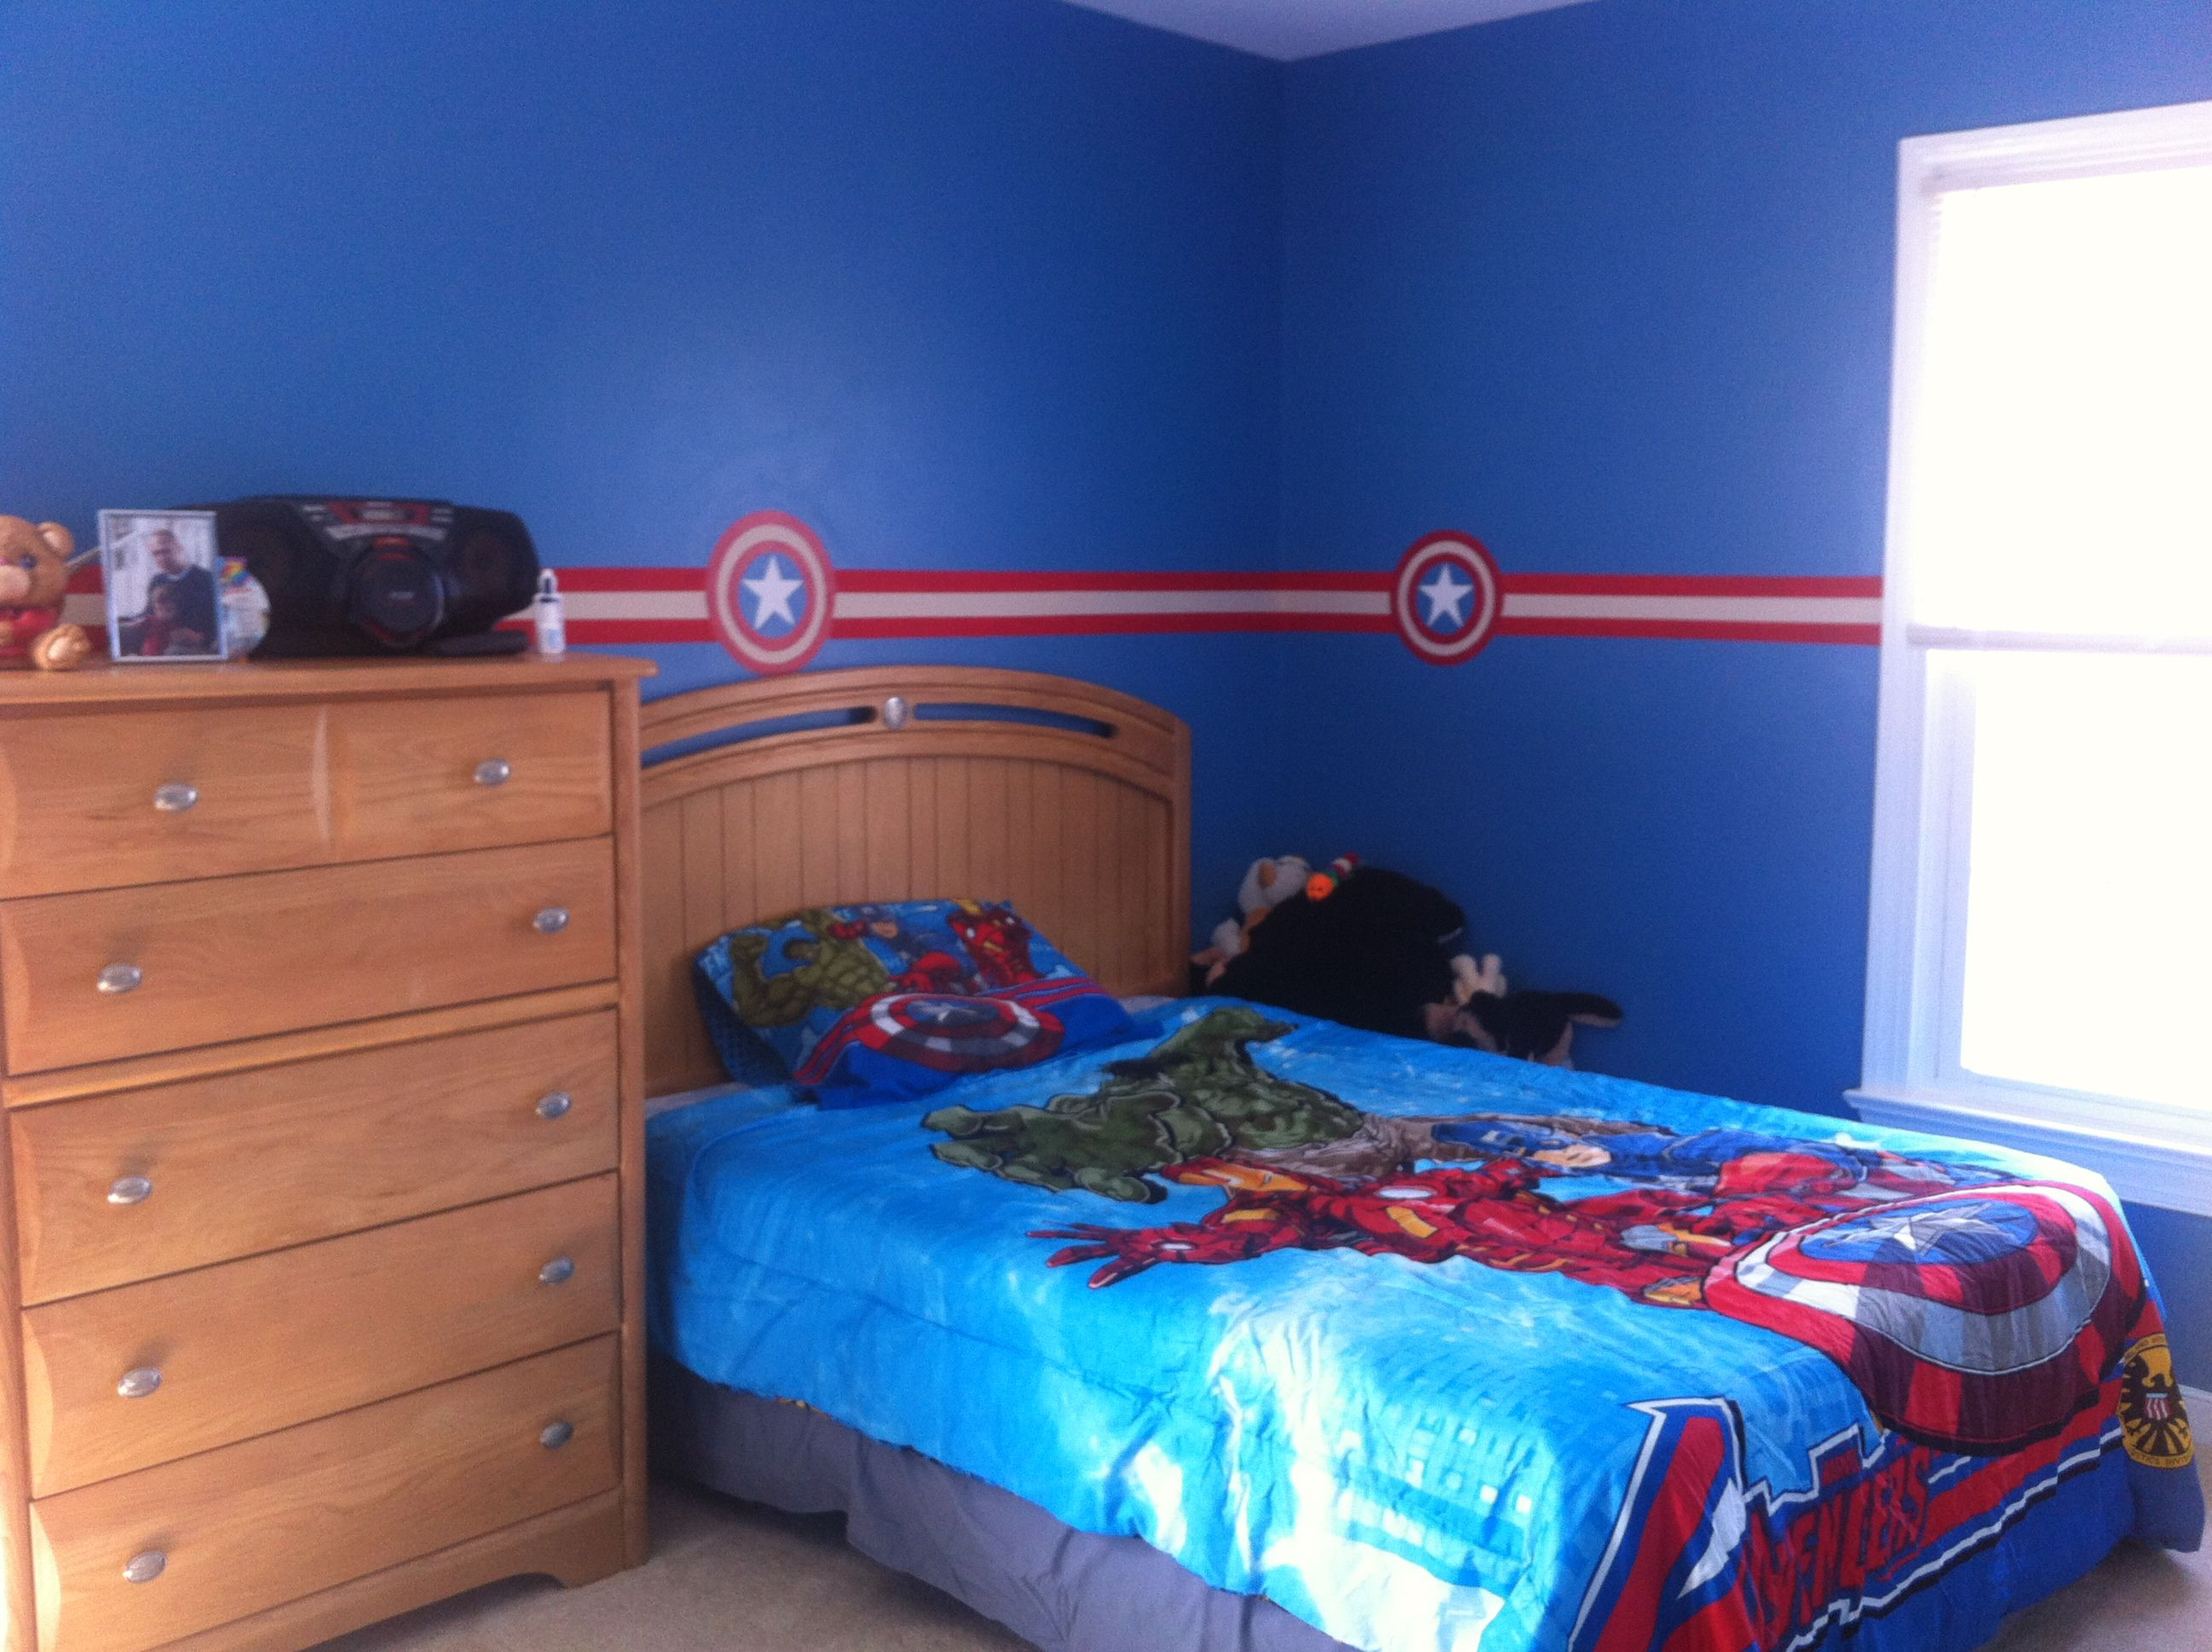 Oldest son 39 s room decor captain america theme we just picked a nice complimentary blue to paint - How we paint your room ...